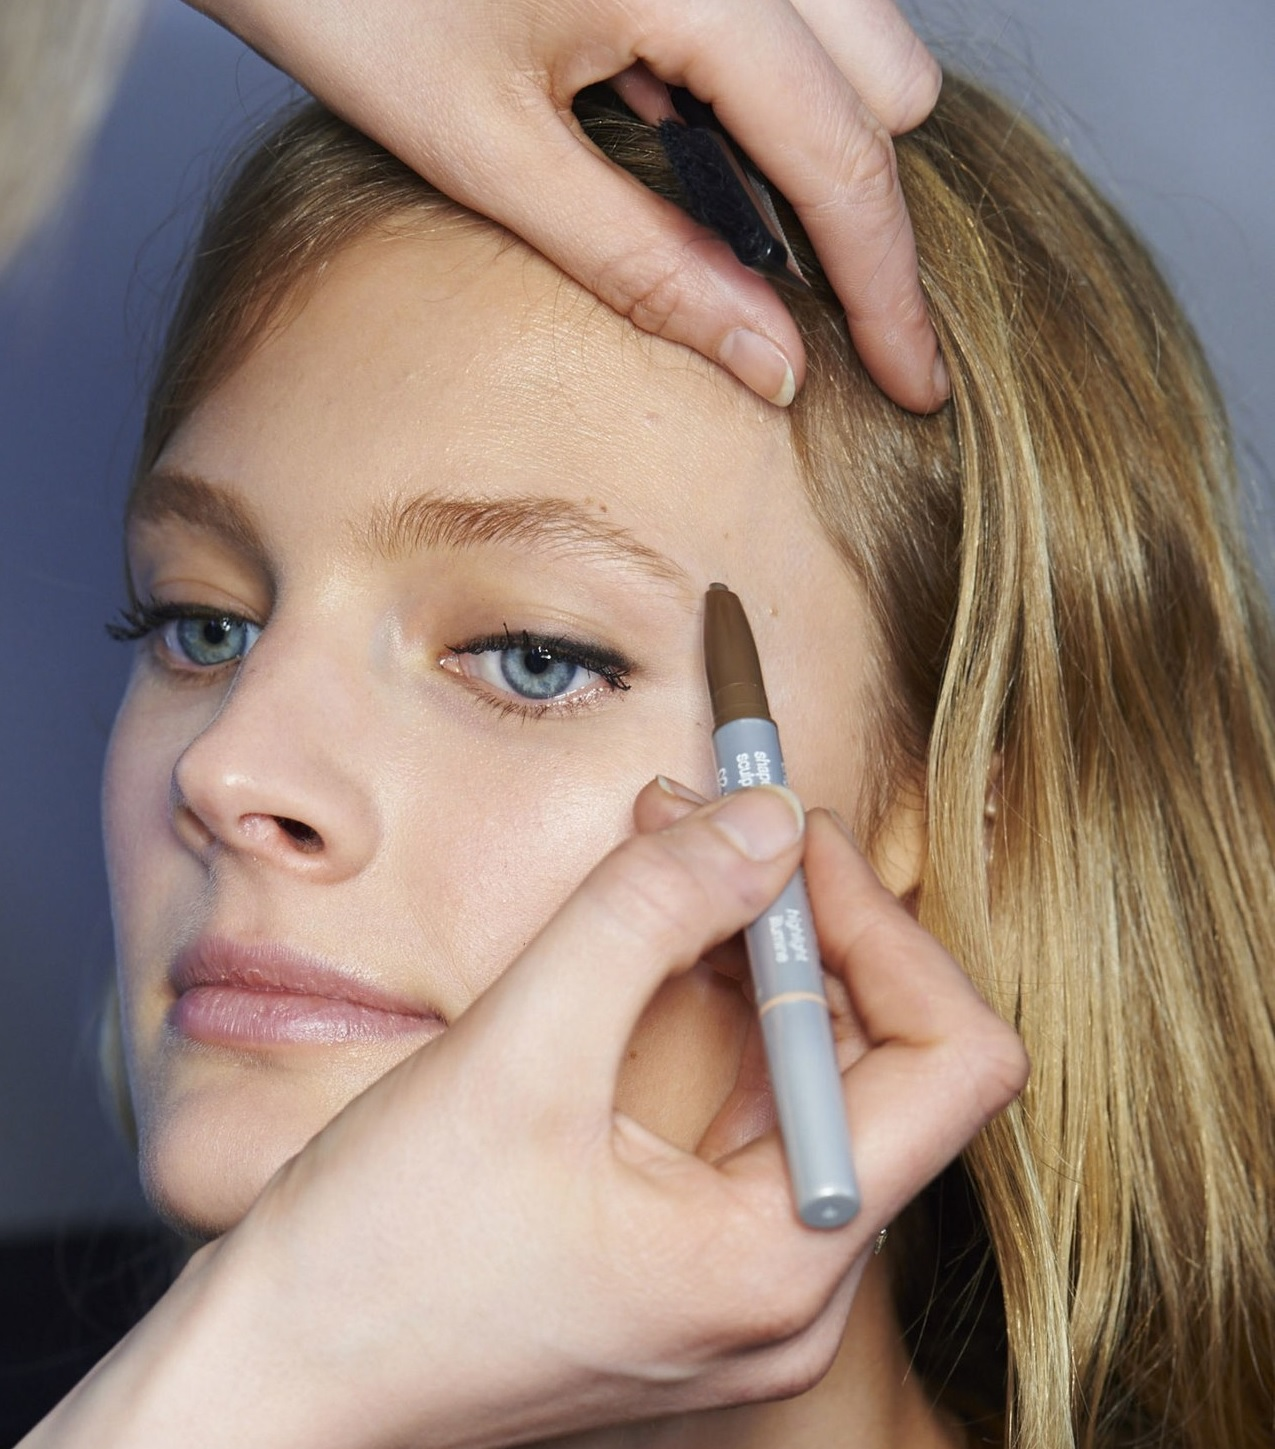 The Best Way To Get Natural Looking Eyebrows